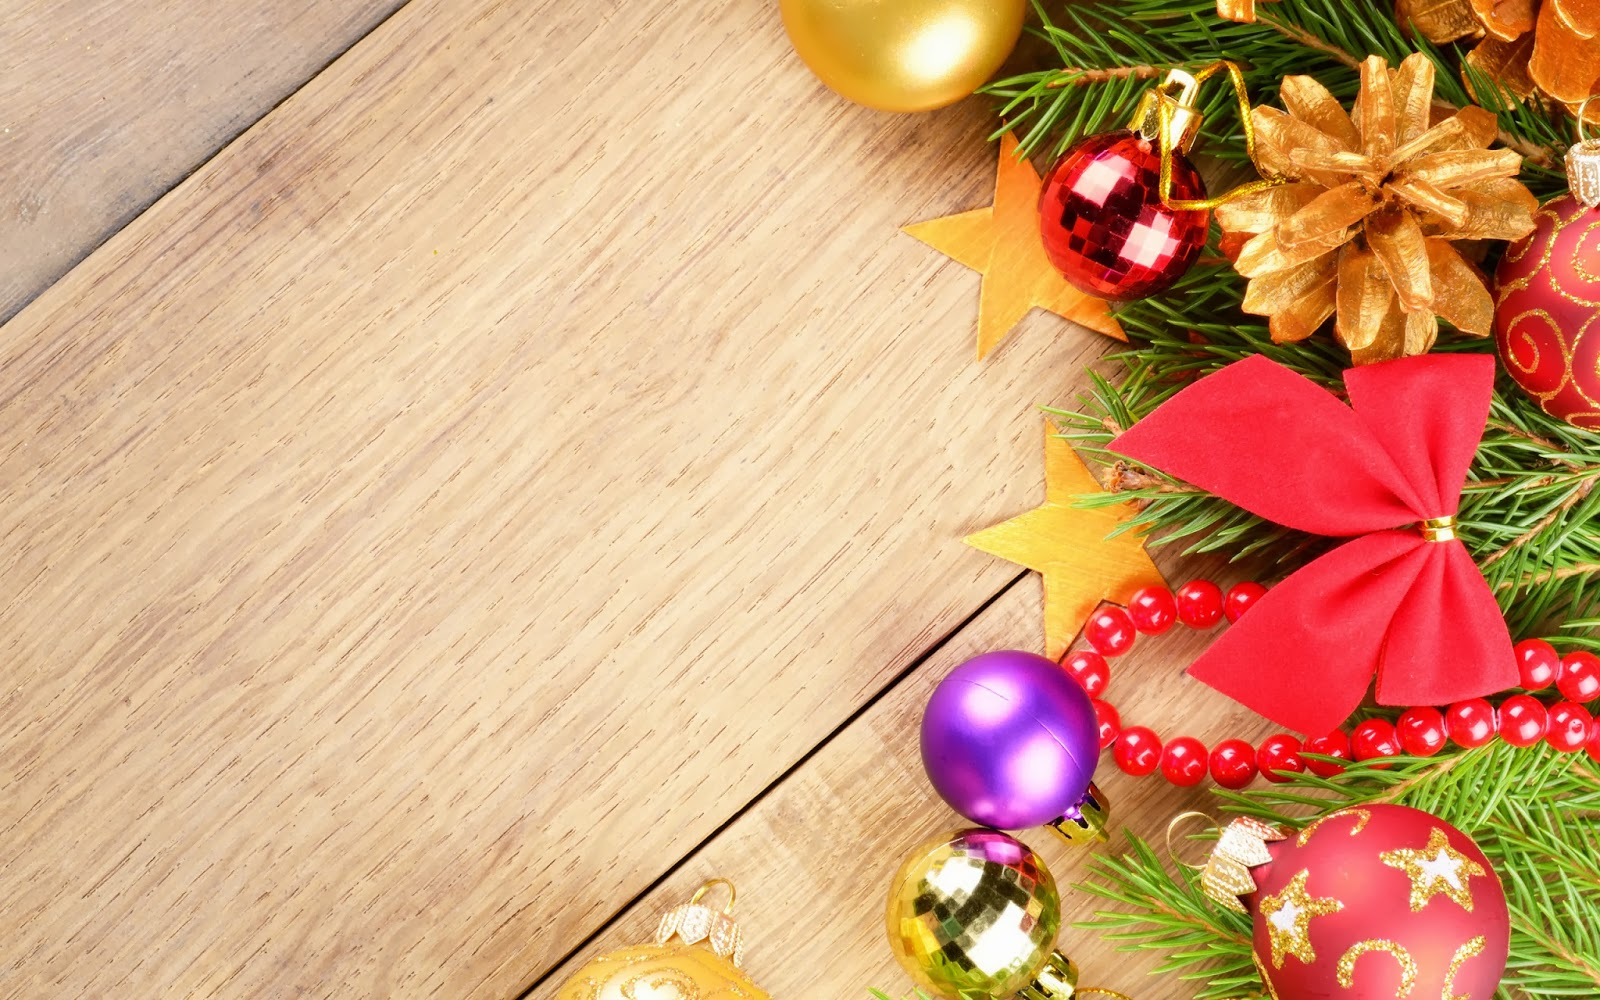 Christmas background vector PSD download 1600x1000